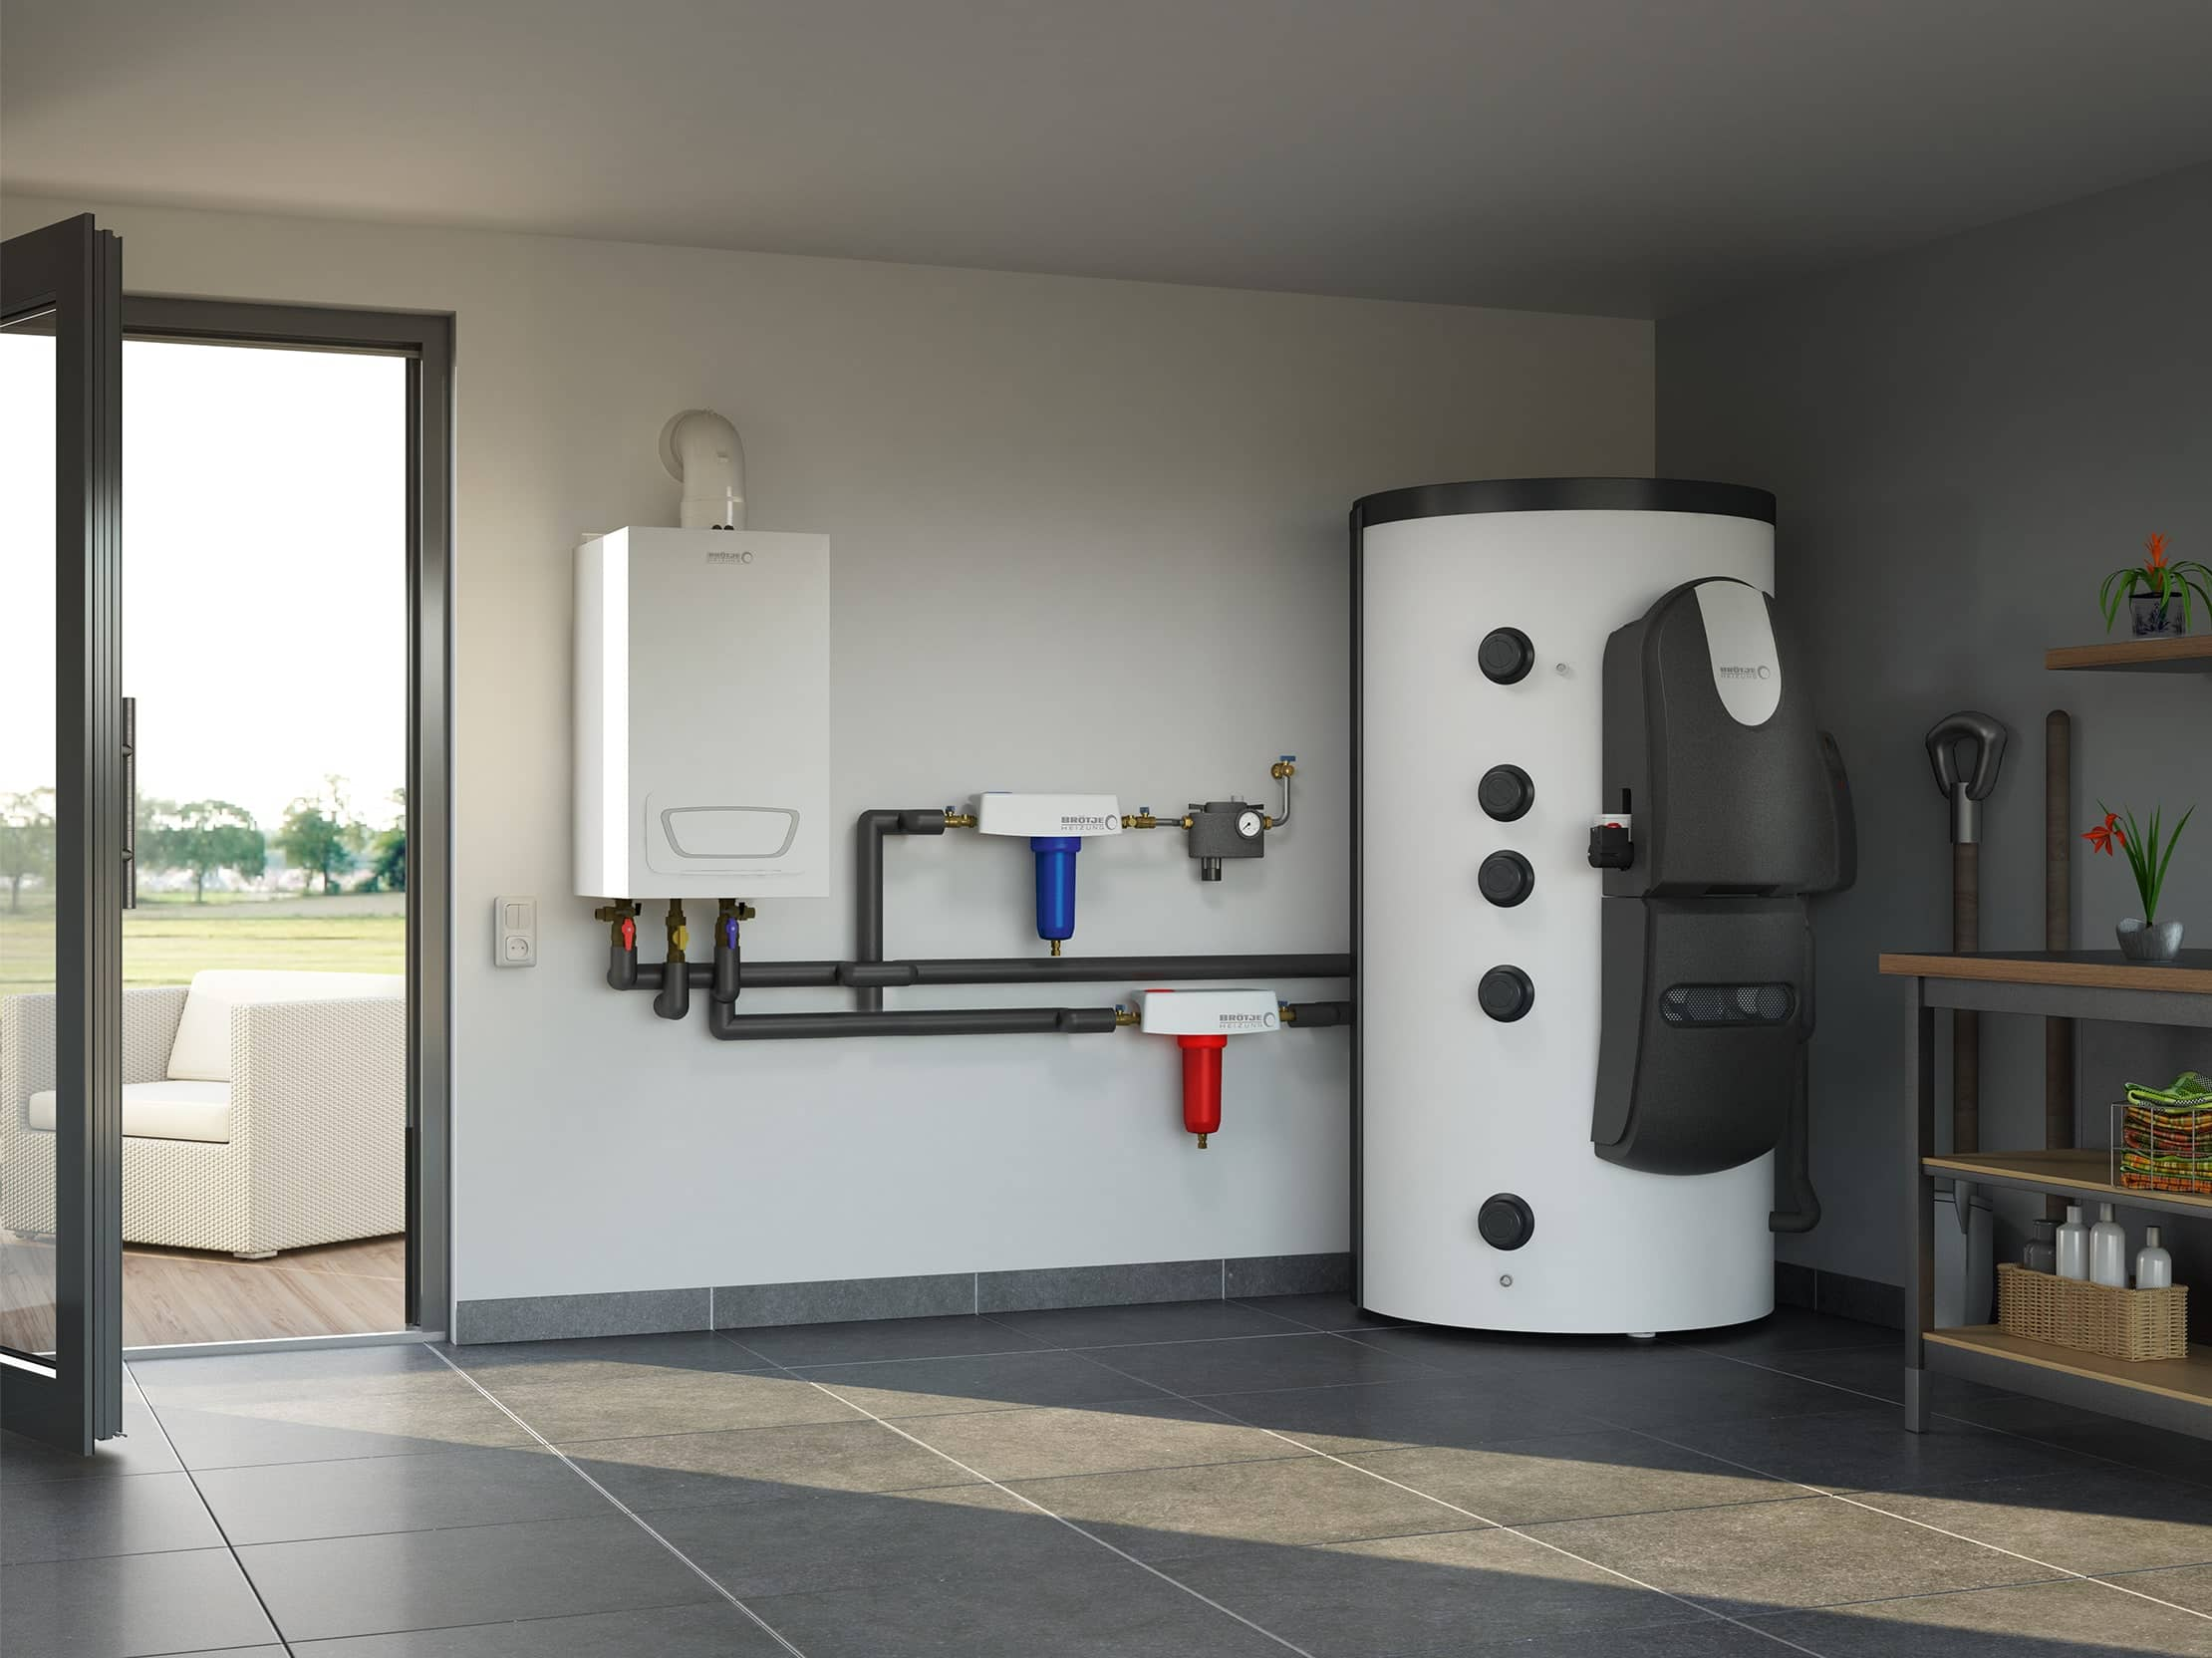 A water treatment device in white / grey, placed in the boiler room of a house overlooking a garden.